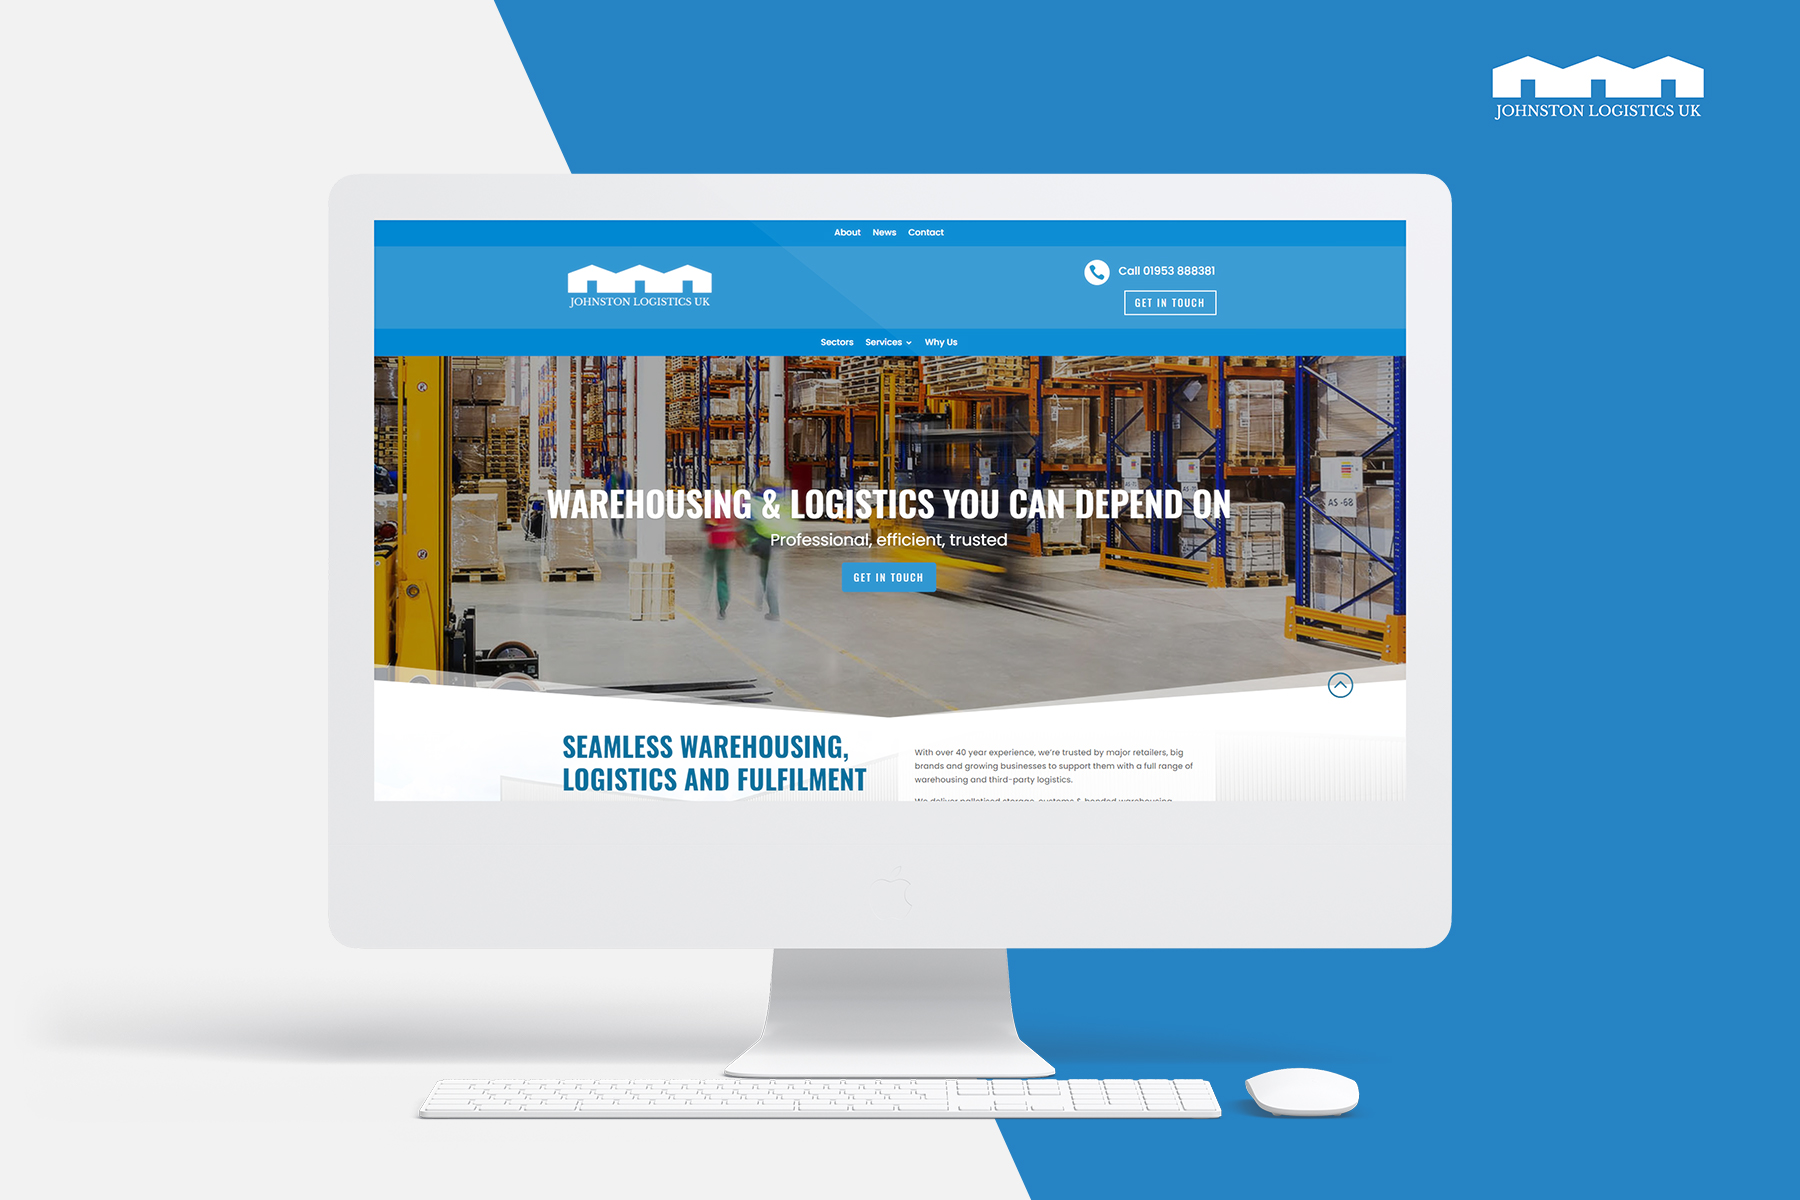 Johnston Logistics UK's New Website Helps Frame Ambitions for Next Era